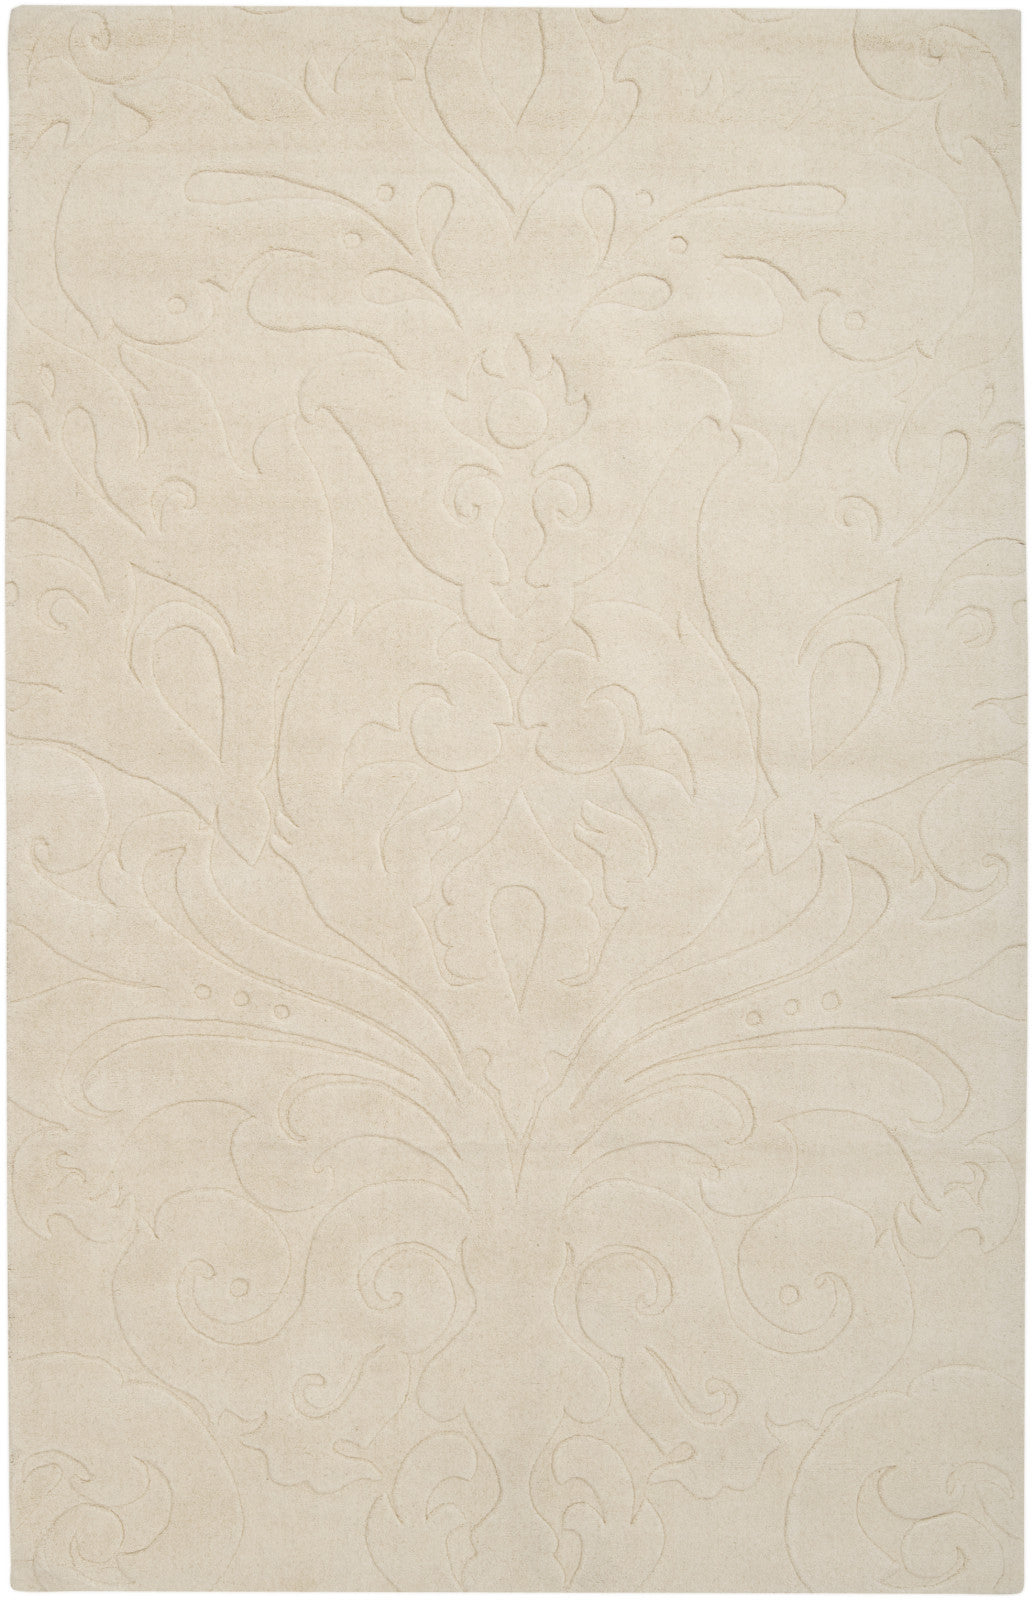 Surya Sculpture SCU-7511 Beige Area Rug by Candice Olson main image